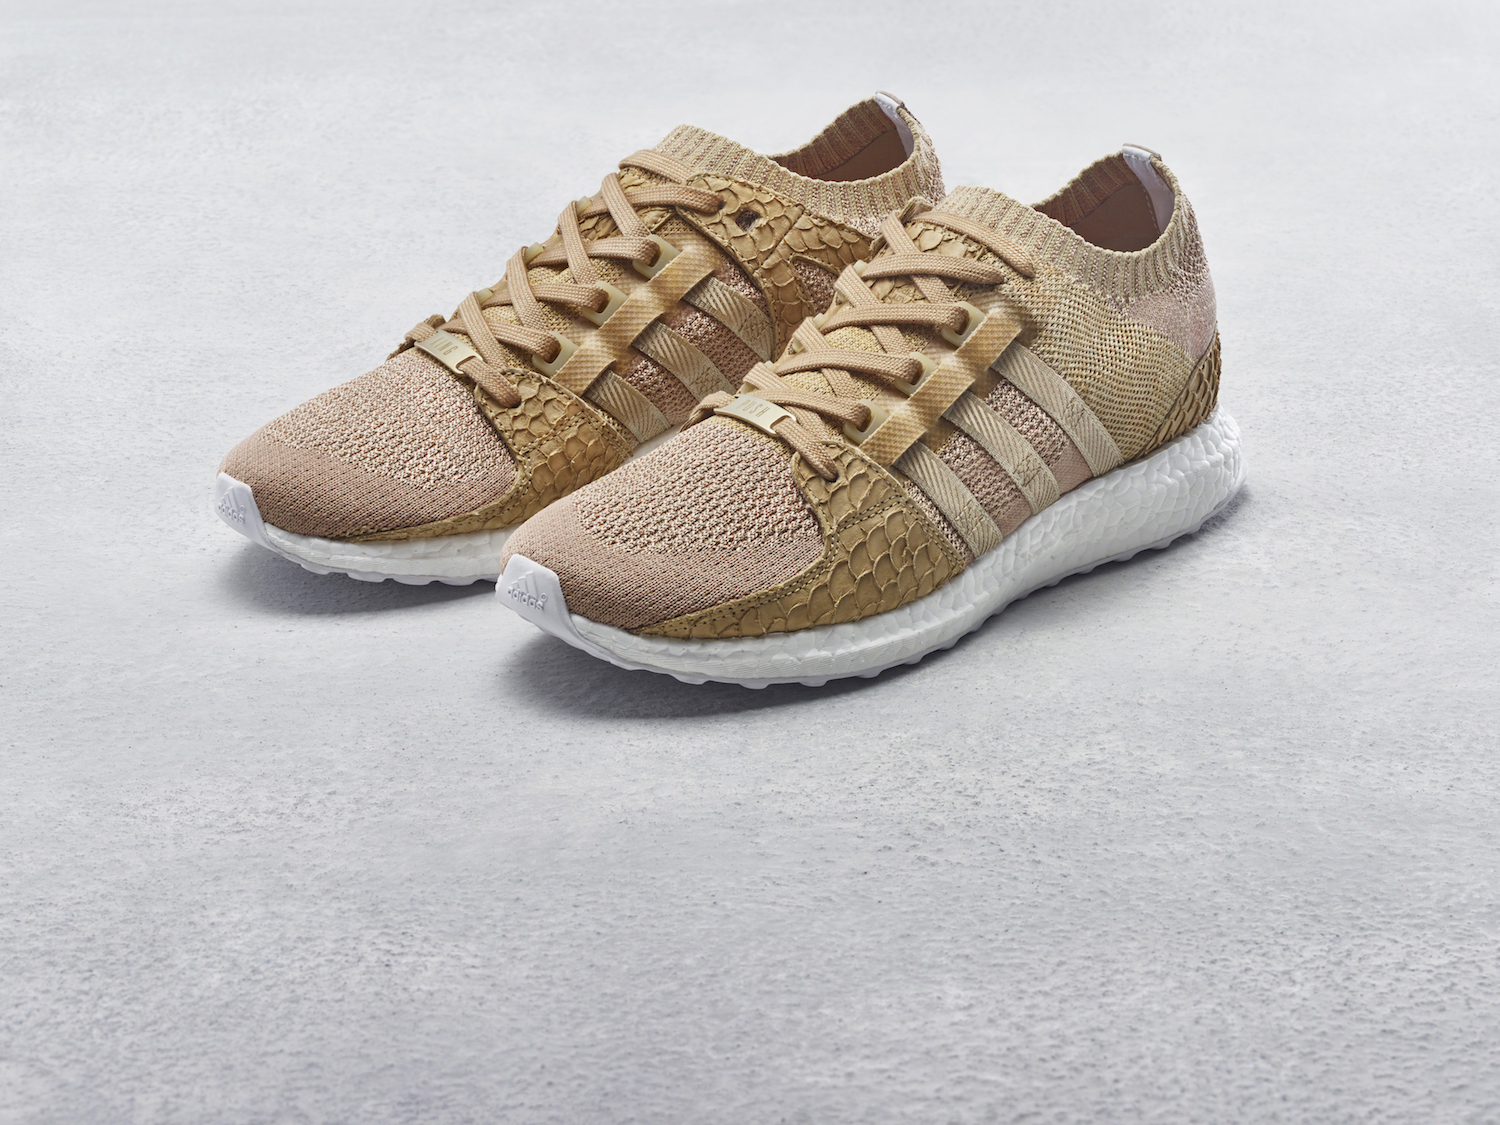 Adidas There May Be Another Pusha T